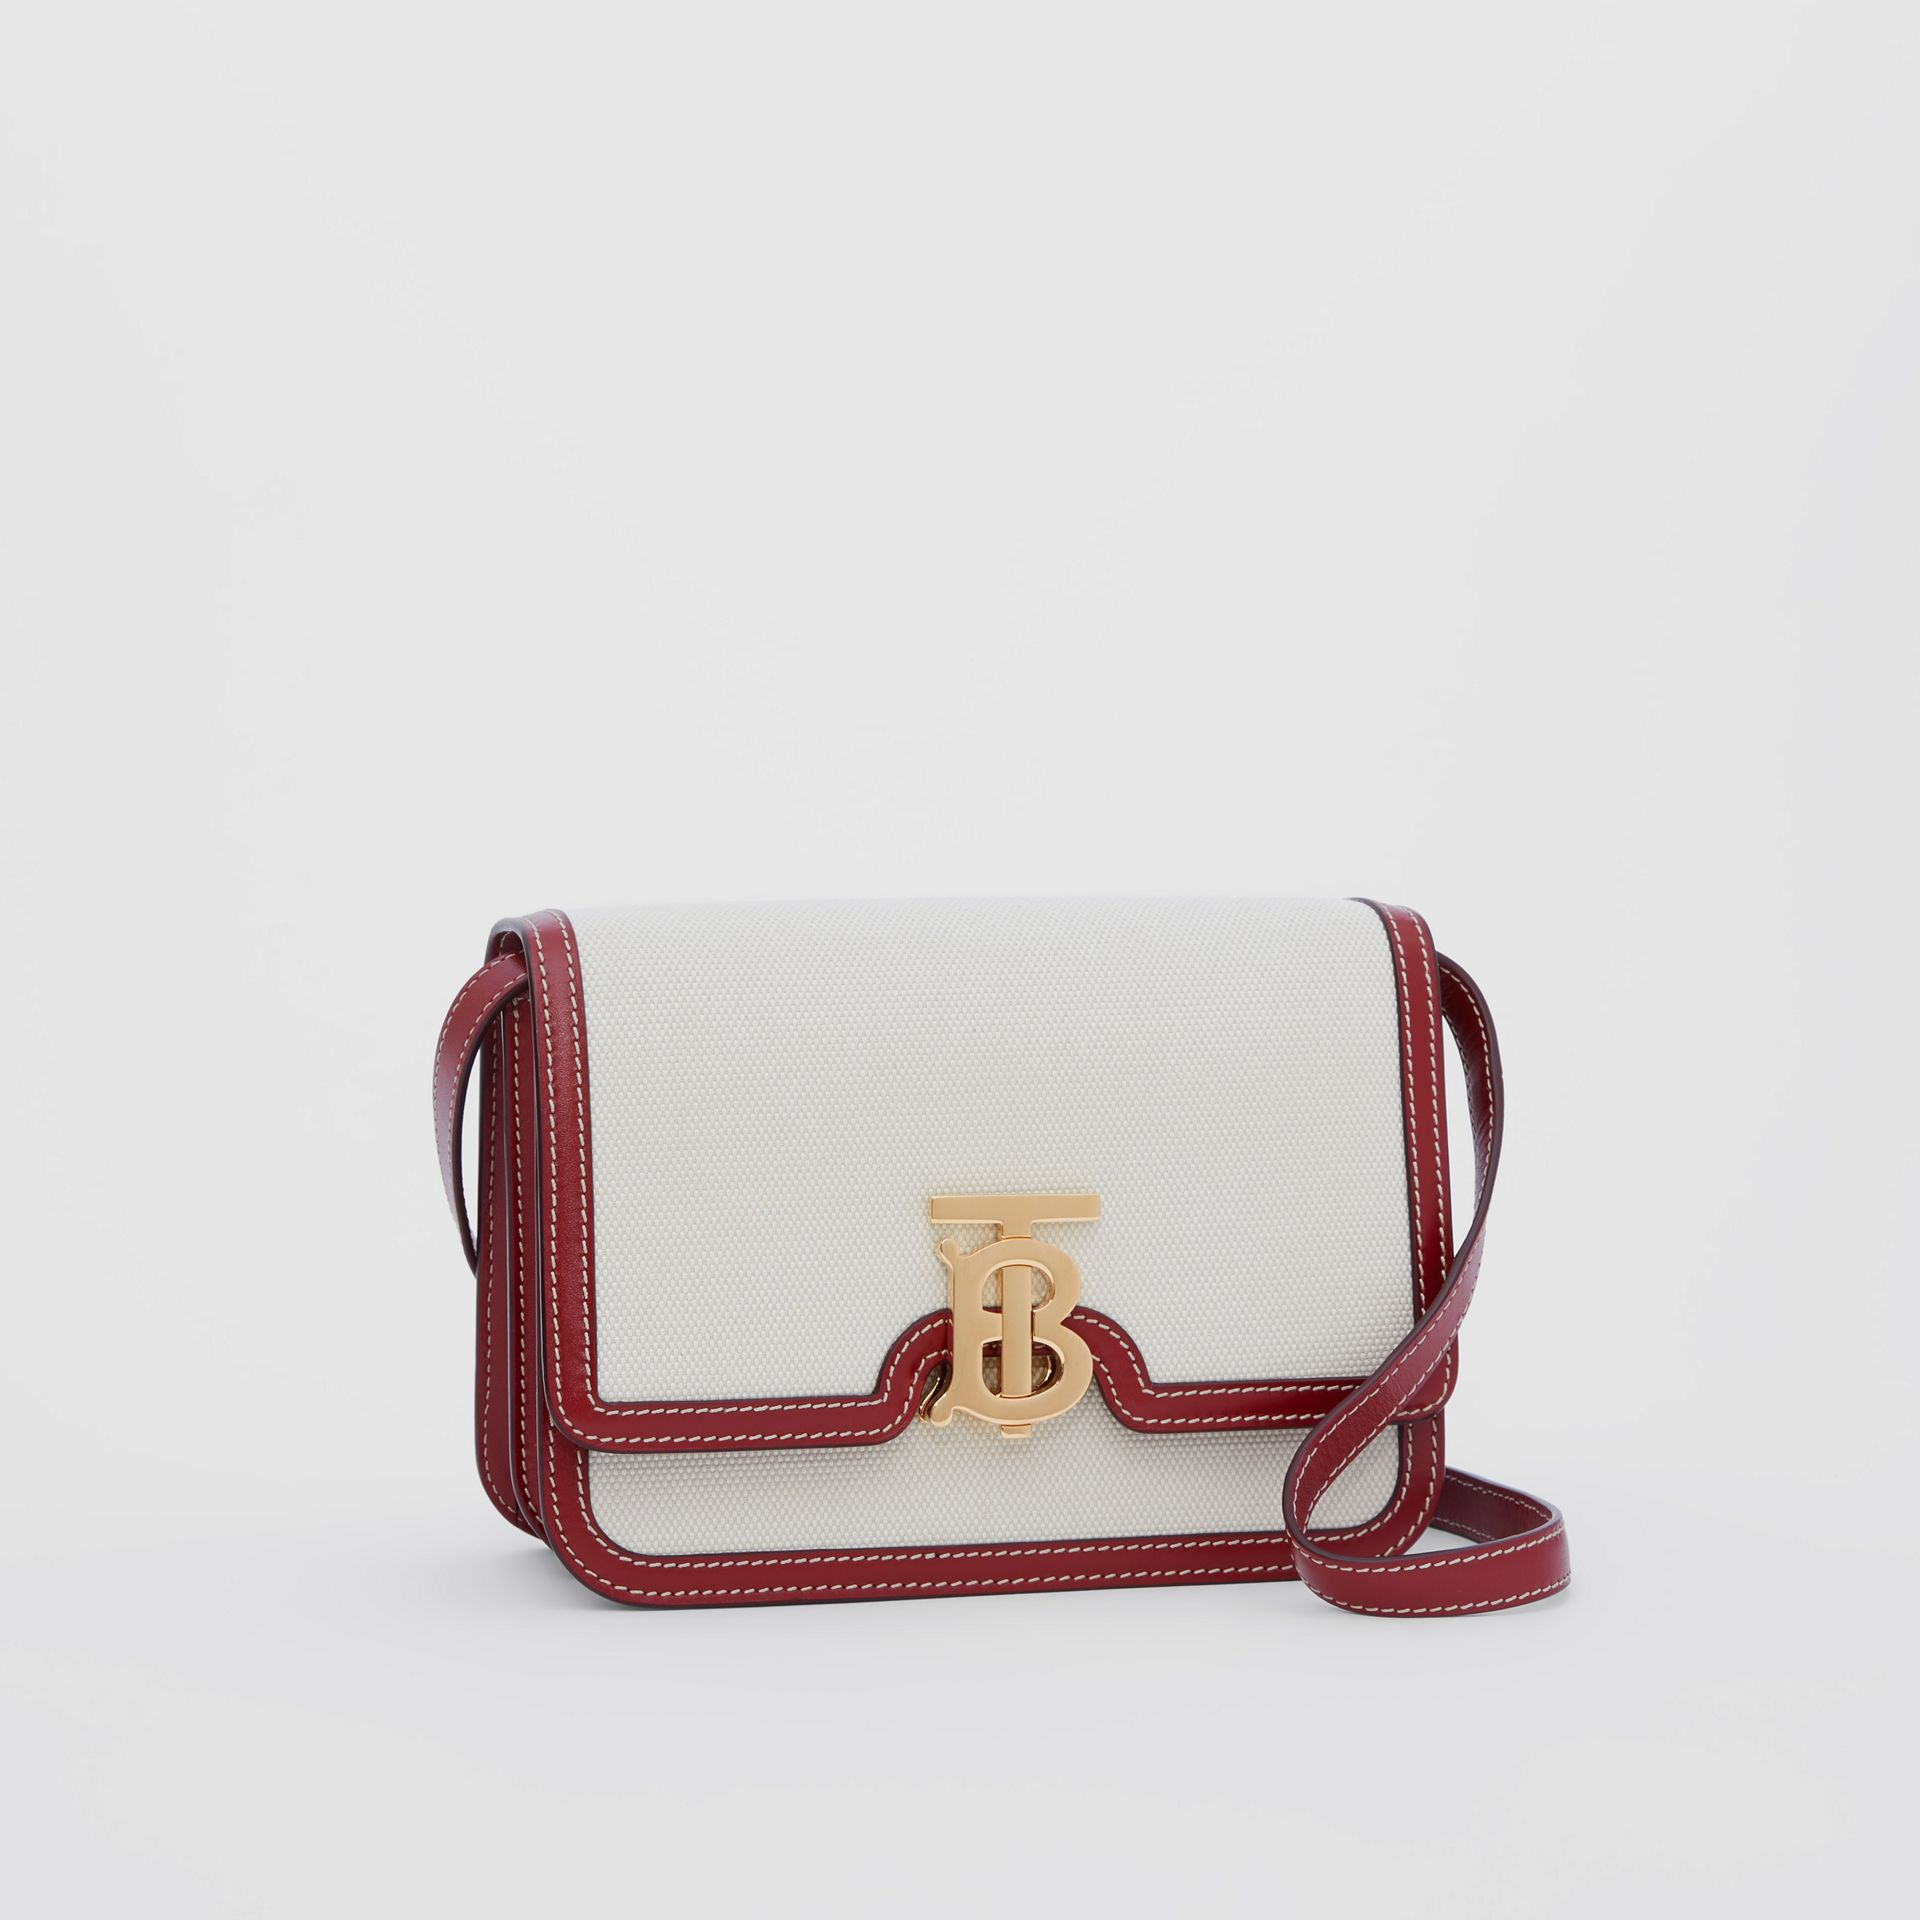 Small Two-tone Canvas and Leather TB Bag in Natural/dark Carmine - Women | Burberry Australia - gallery image 5